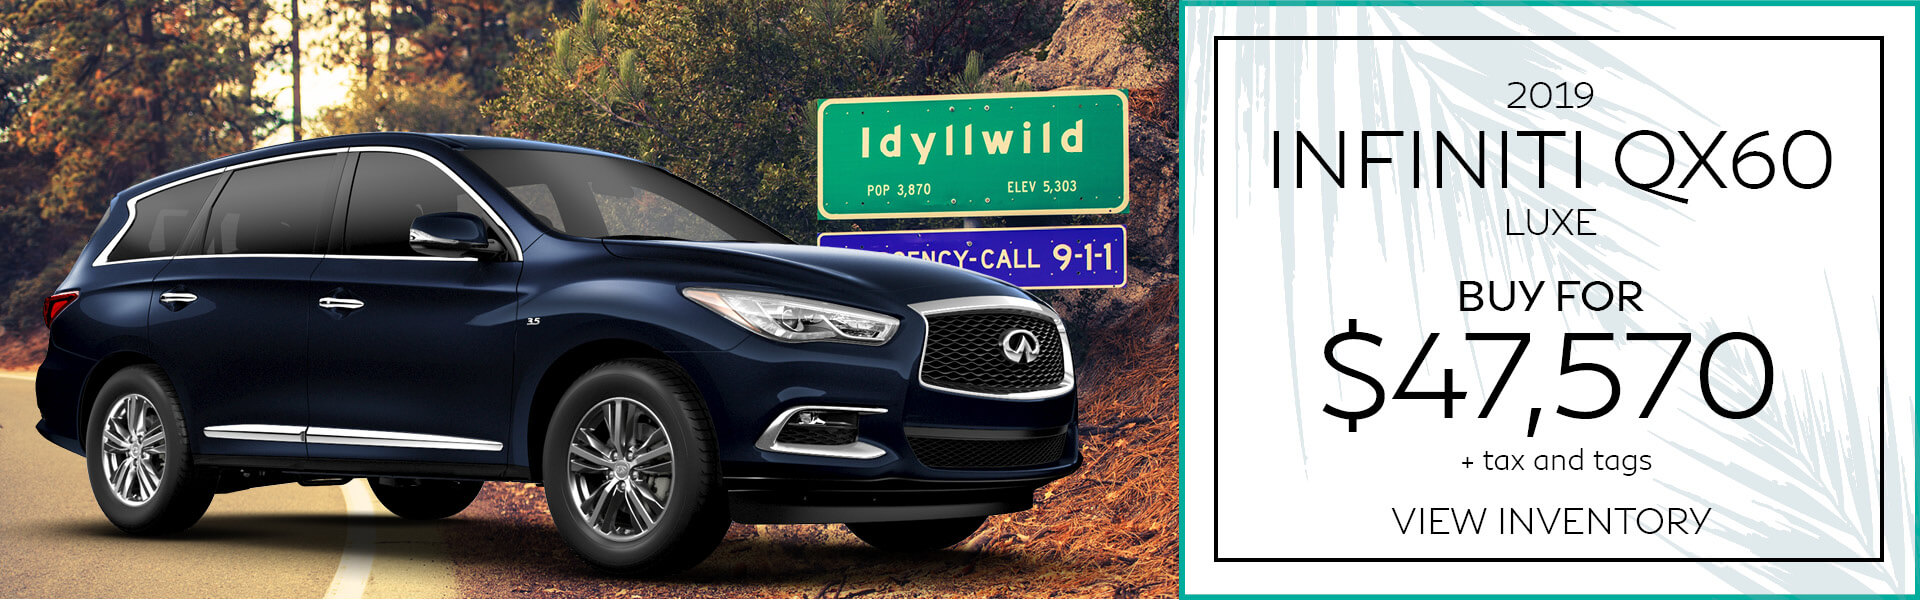 QX60 - Buy for $47,570